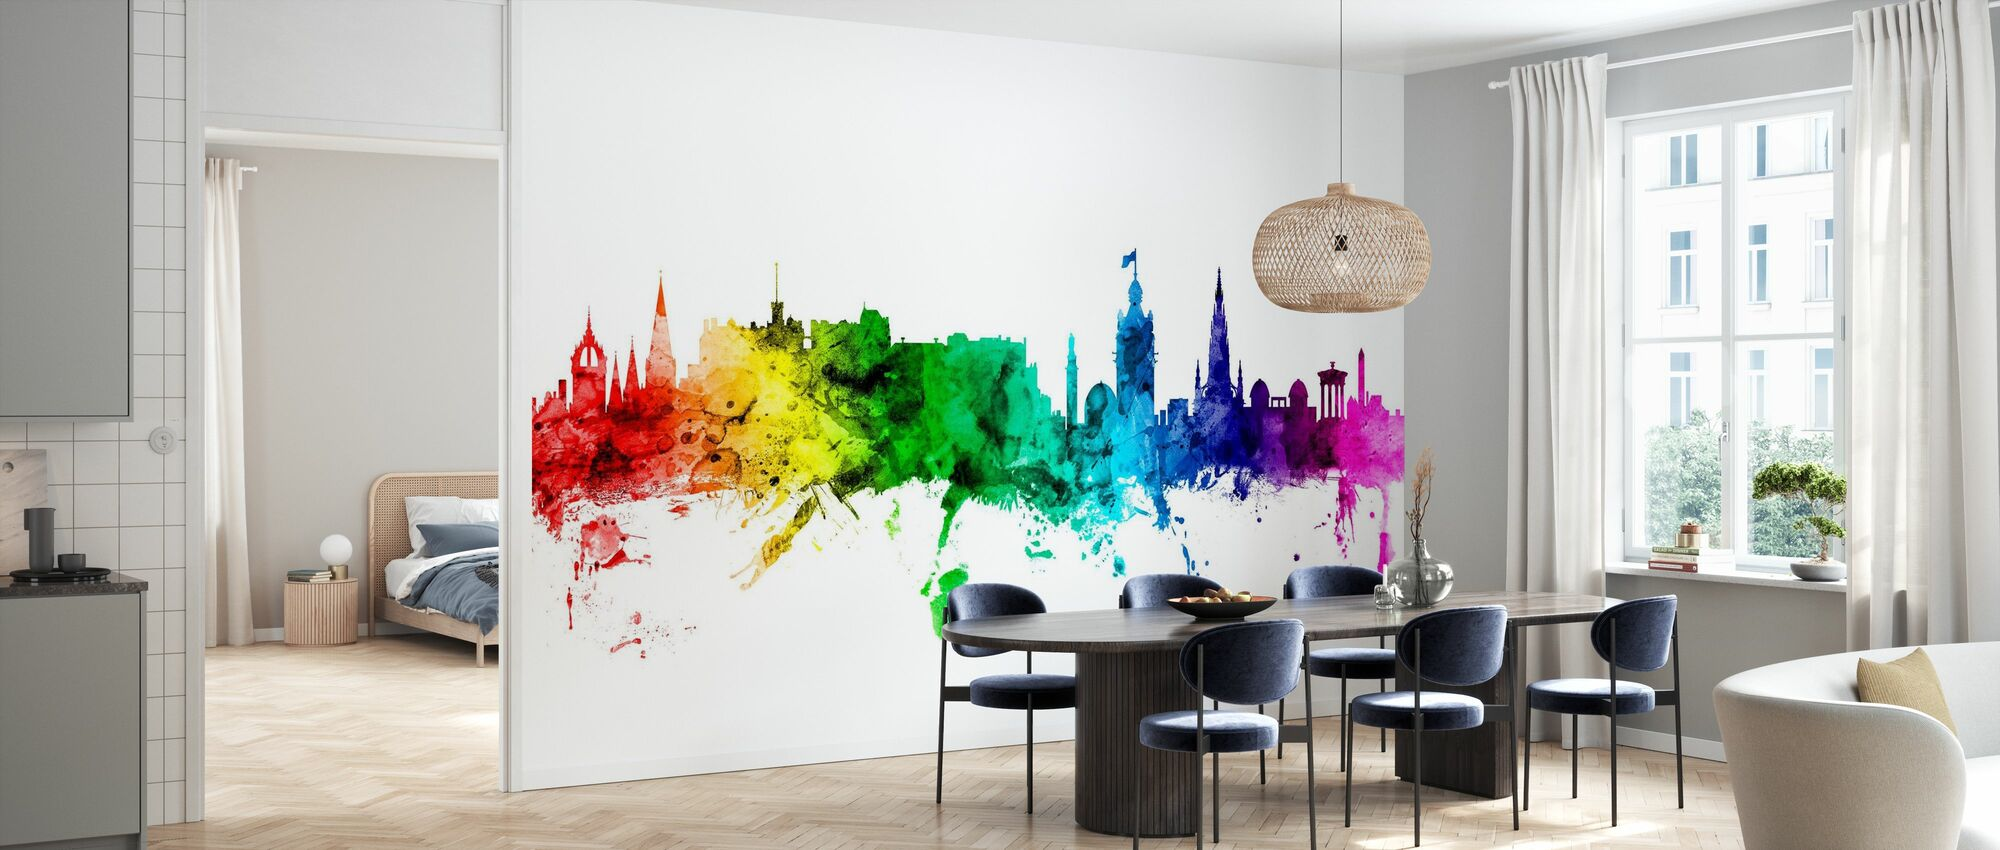 Edinburgh Skyline Rainbow - Wallpaper - Kitchen